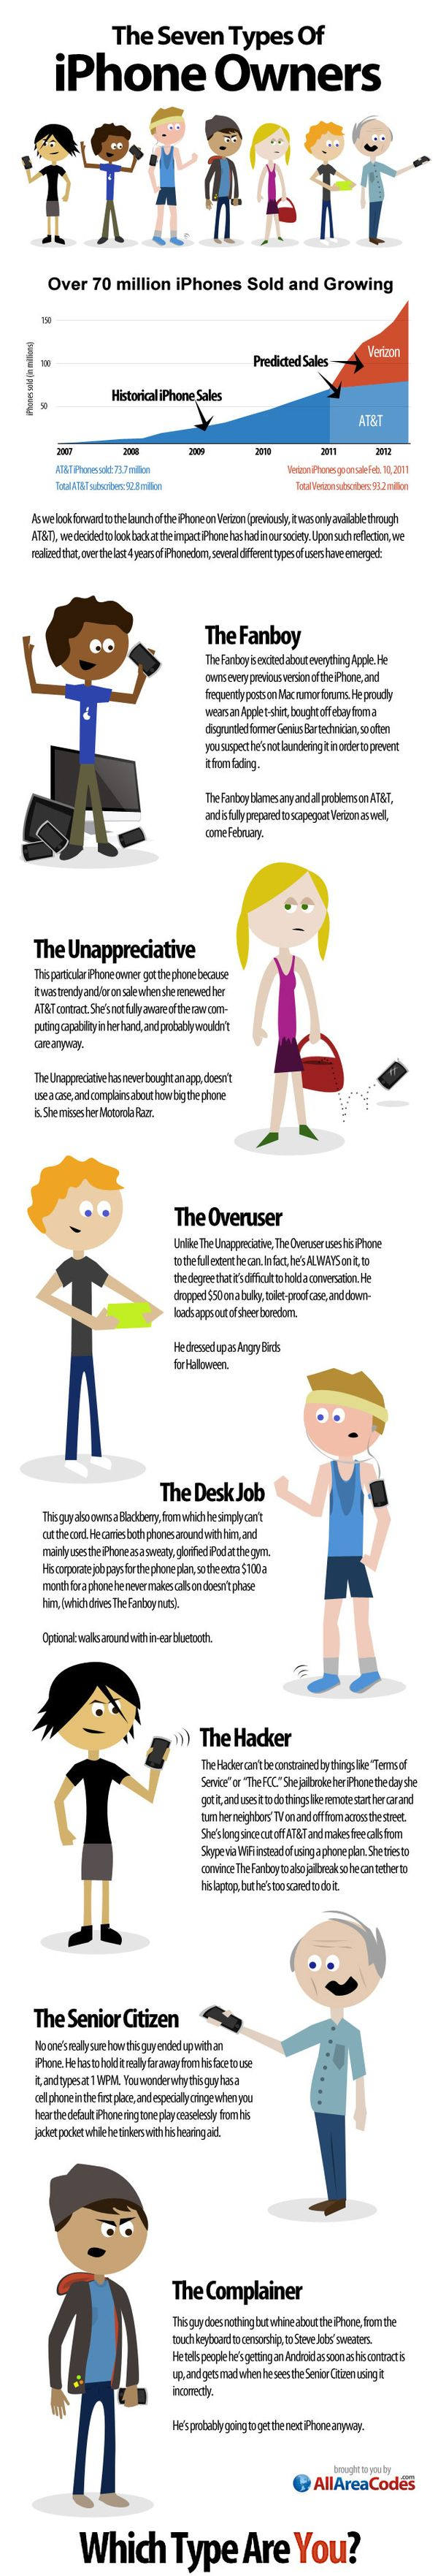 The 7 Types Of iPhone Owners [Infographic]